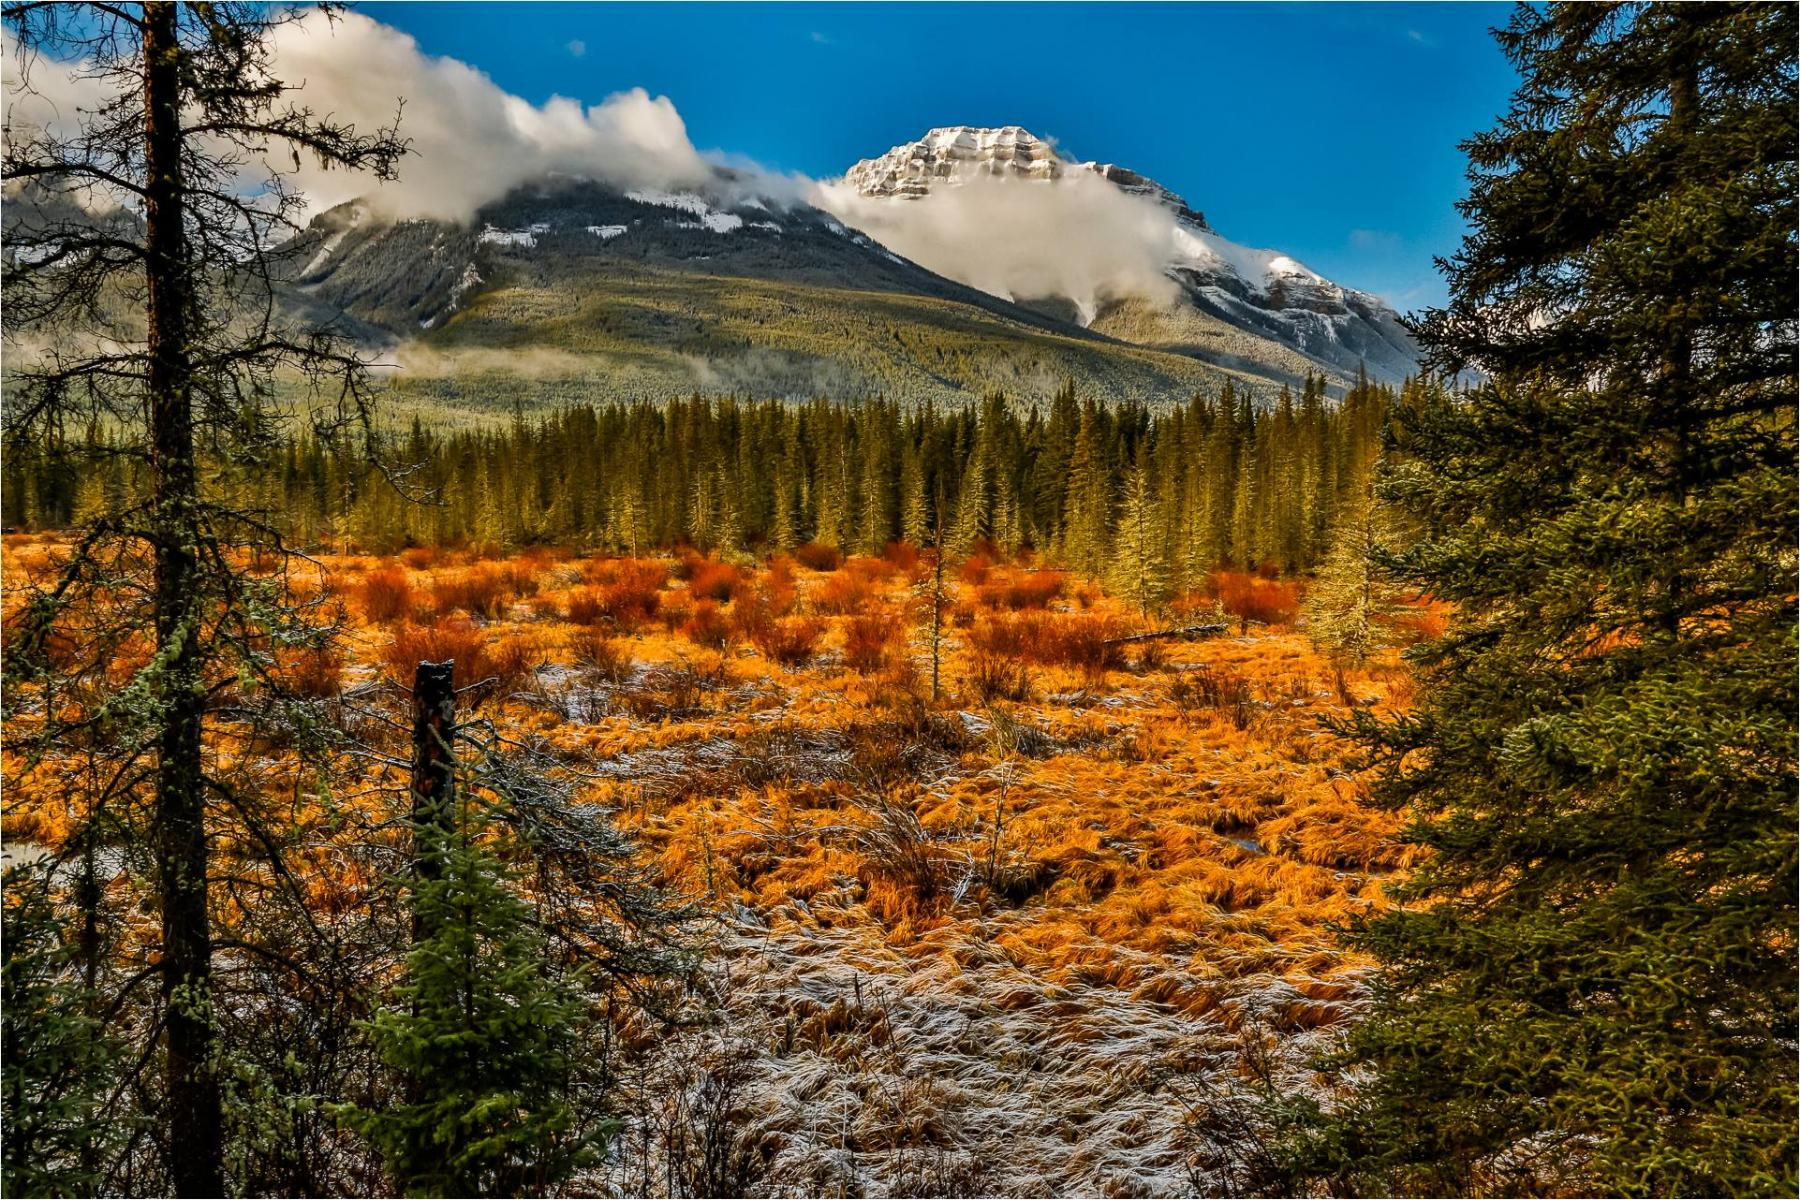 Amazing Colours of Canadian Rockies in Autumn starting at Calgary, AB, Canada